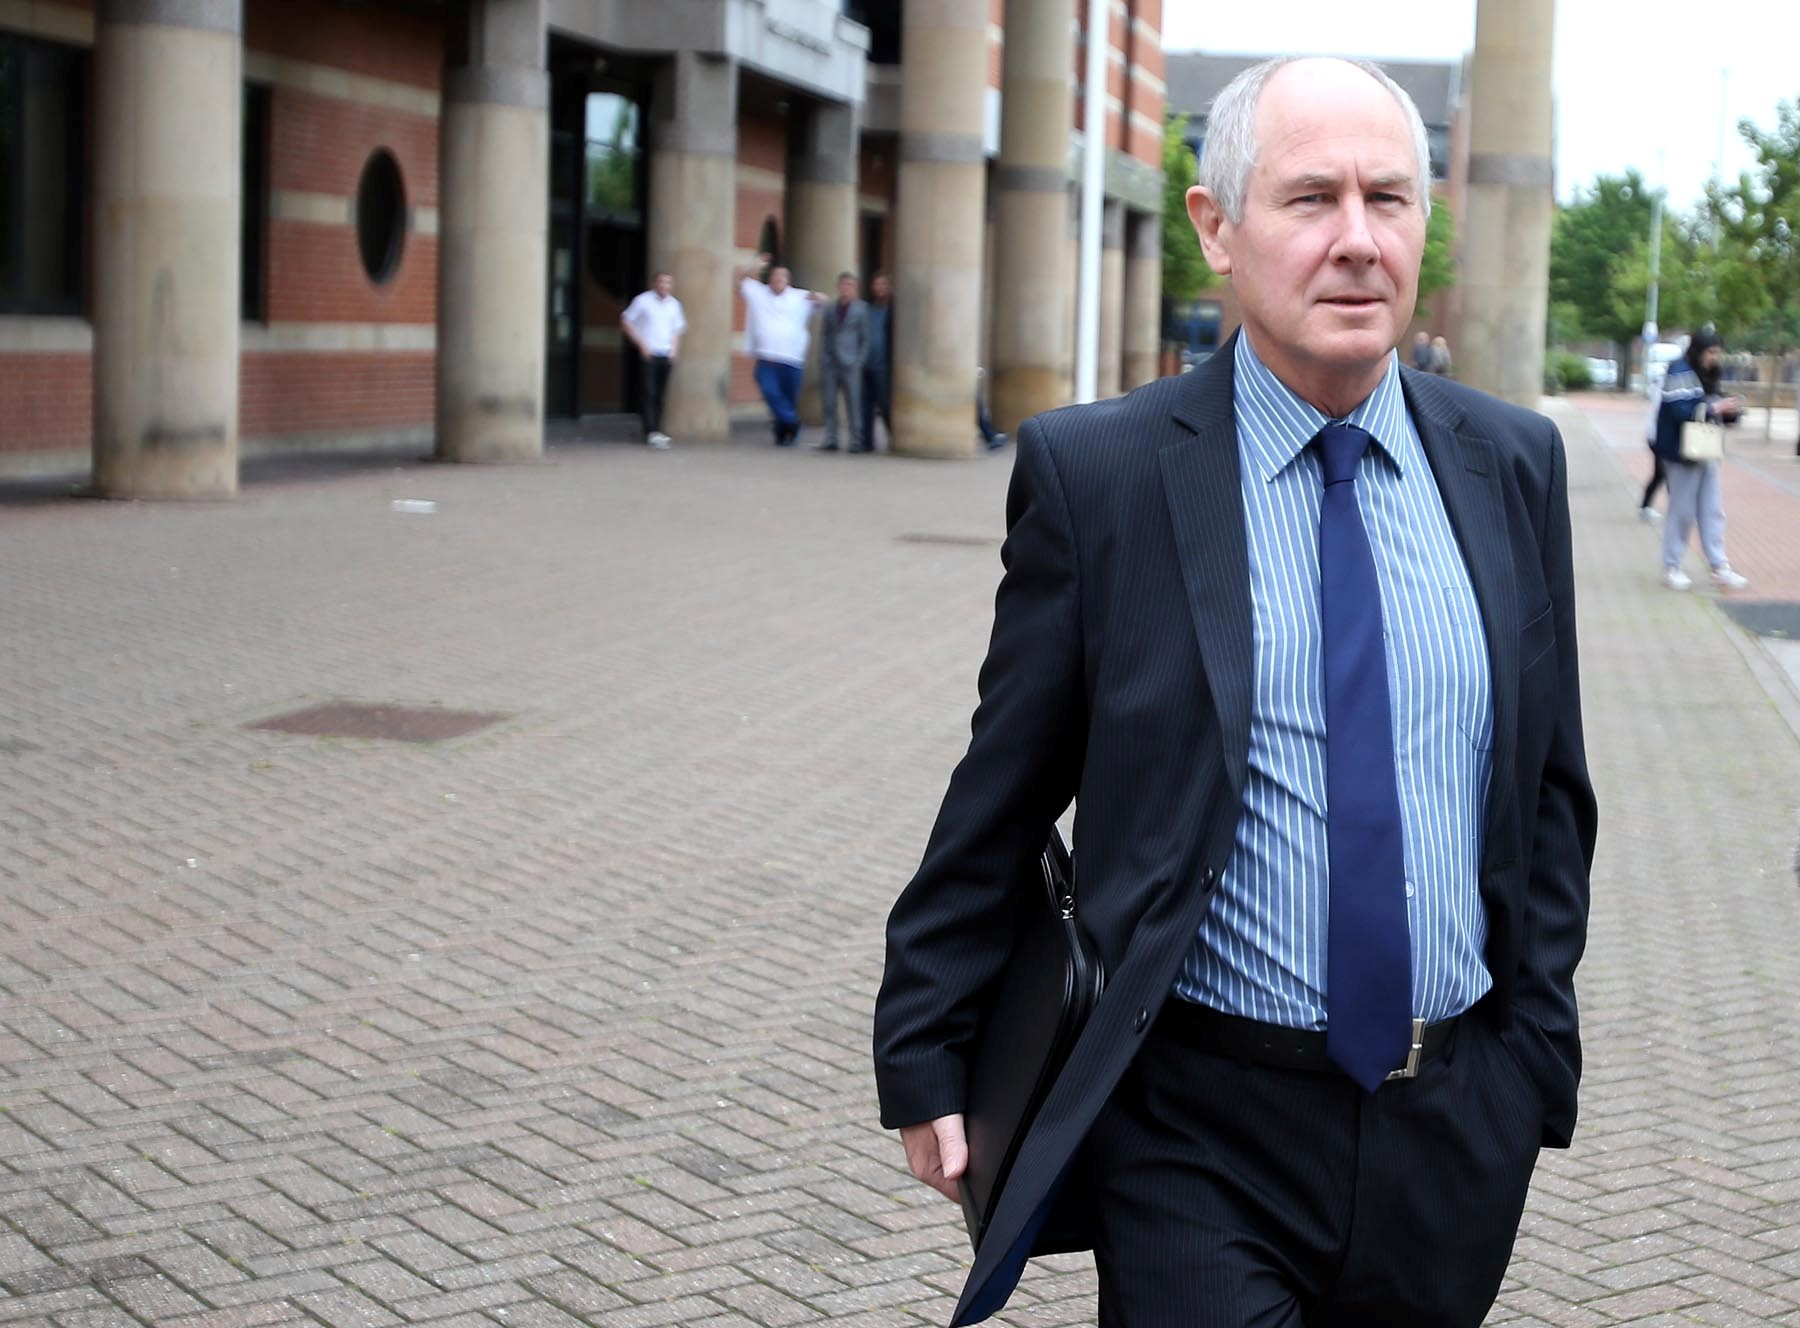 John Darwin leaves Teesside Crown Court after the hearing today